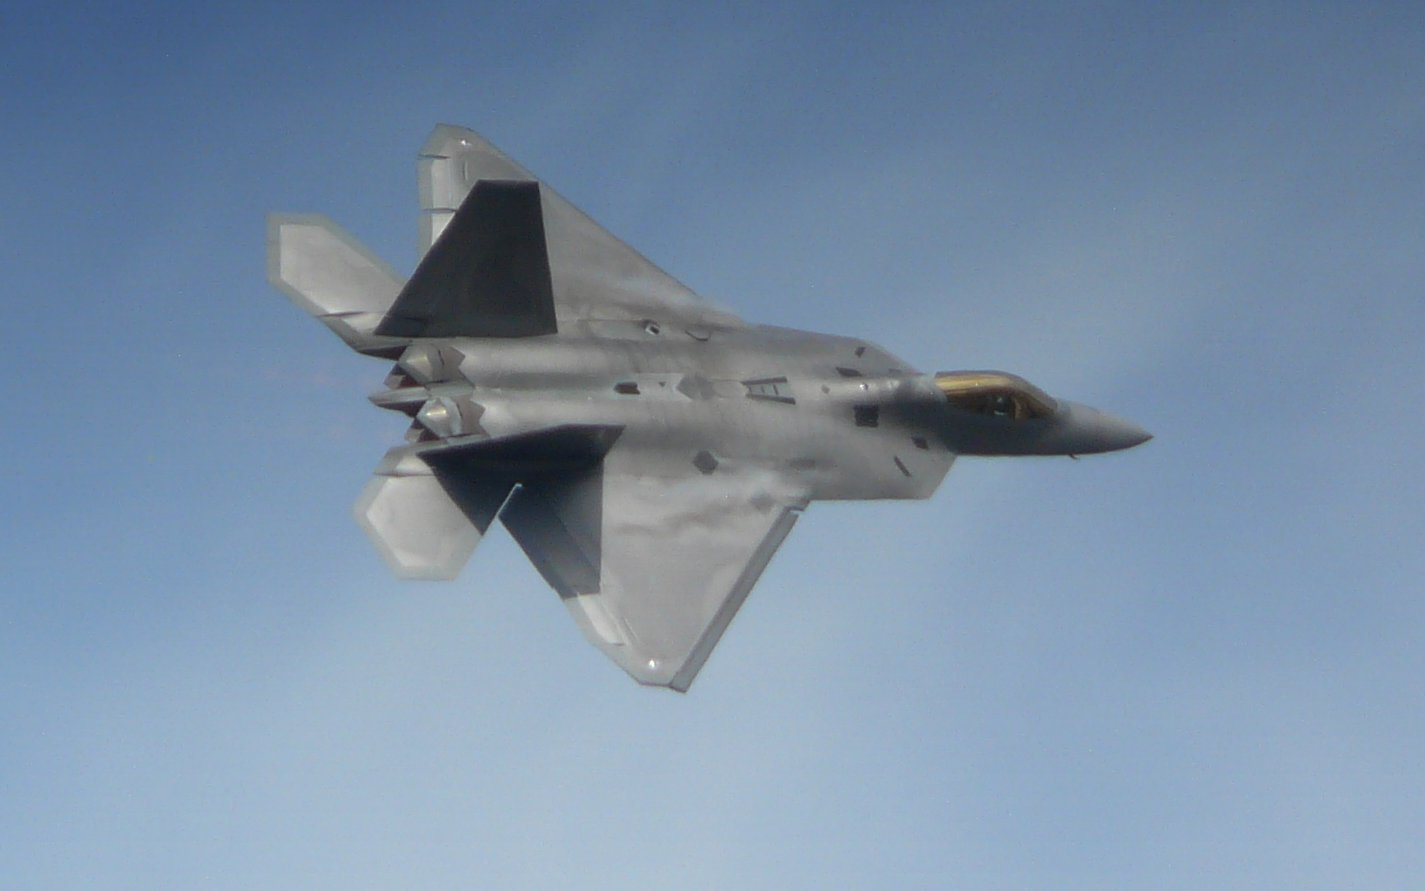 F-22 at Farnborough Airshow 2010